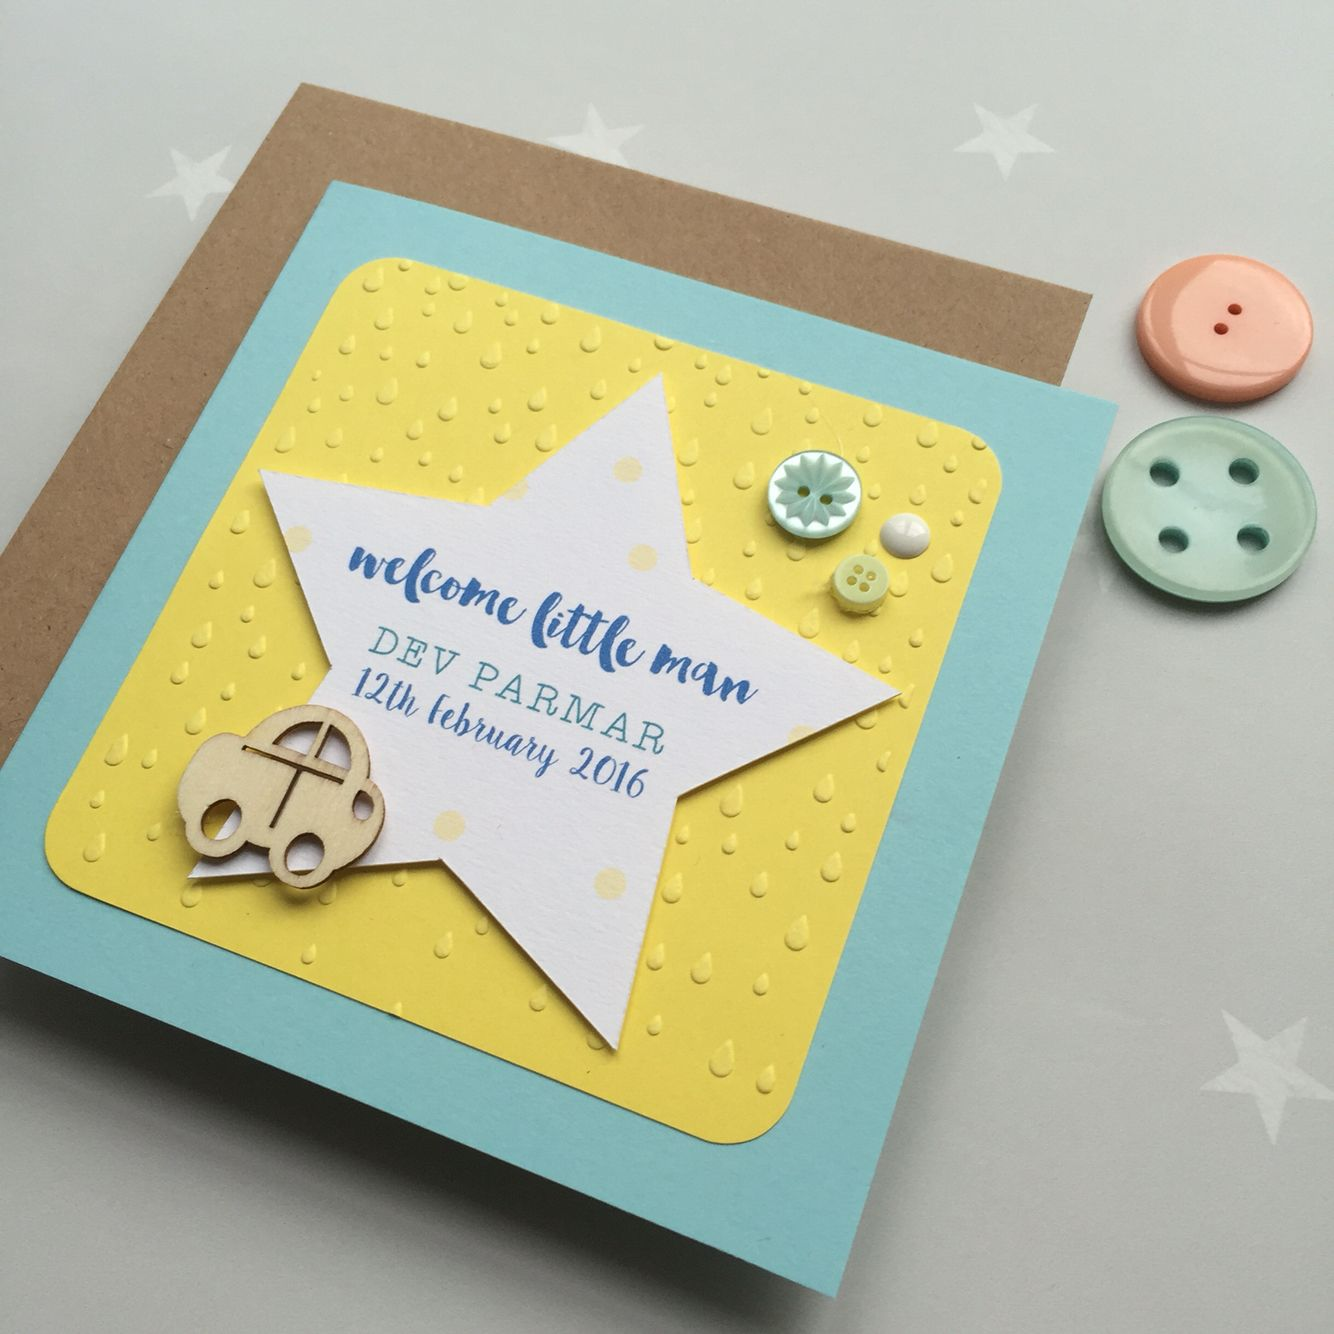 We've had lots of new additions to our family and we loved meeting our newest nephew too, handmade little man card 🍼🍼